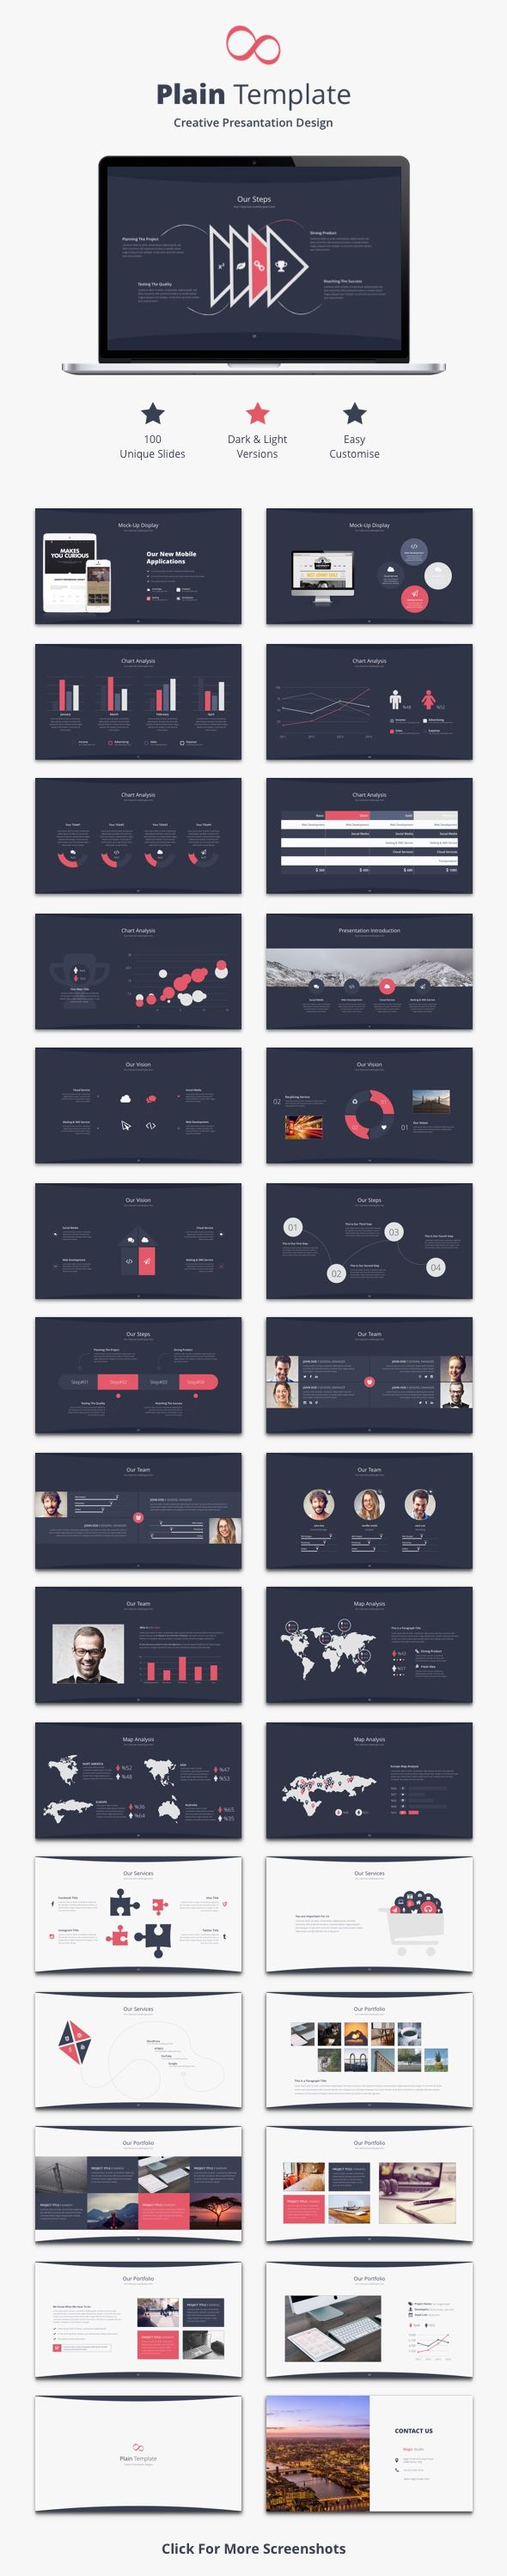 Plain Keynote Template